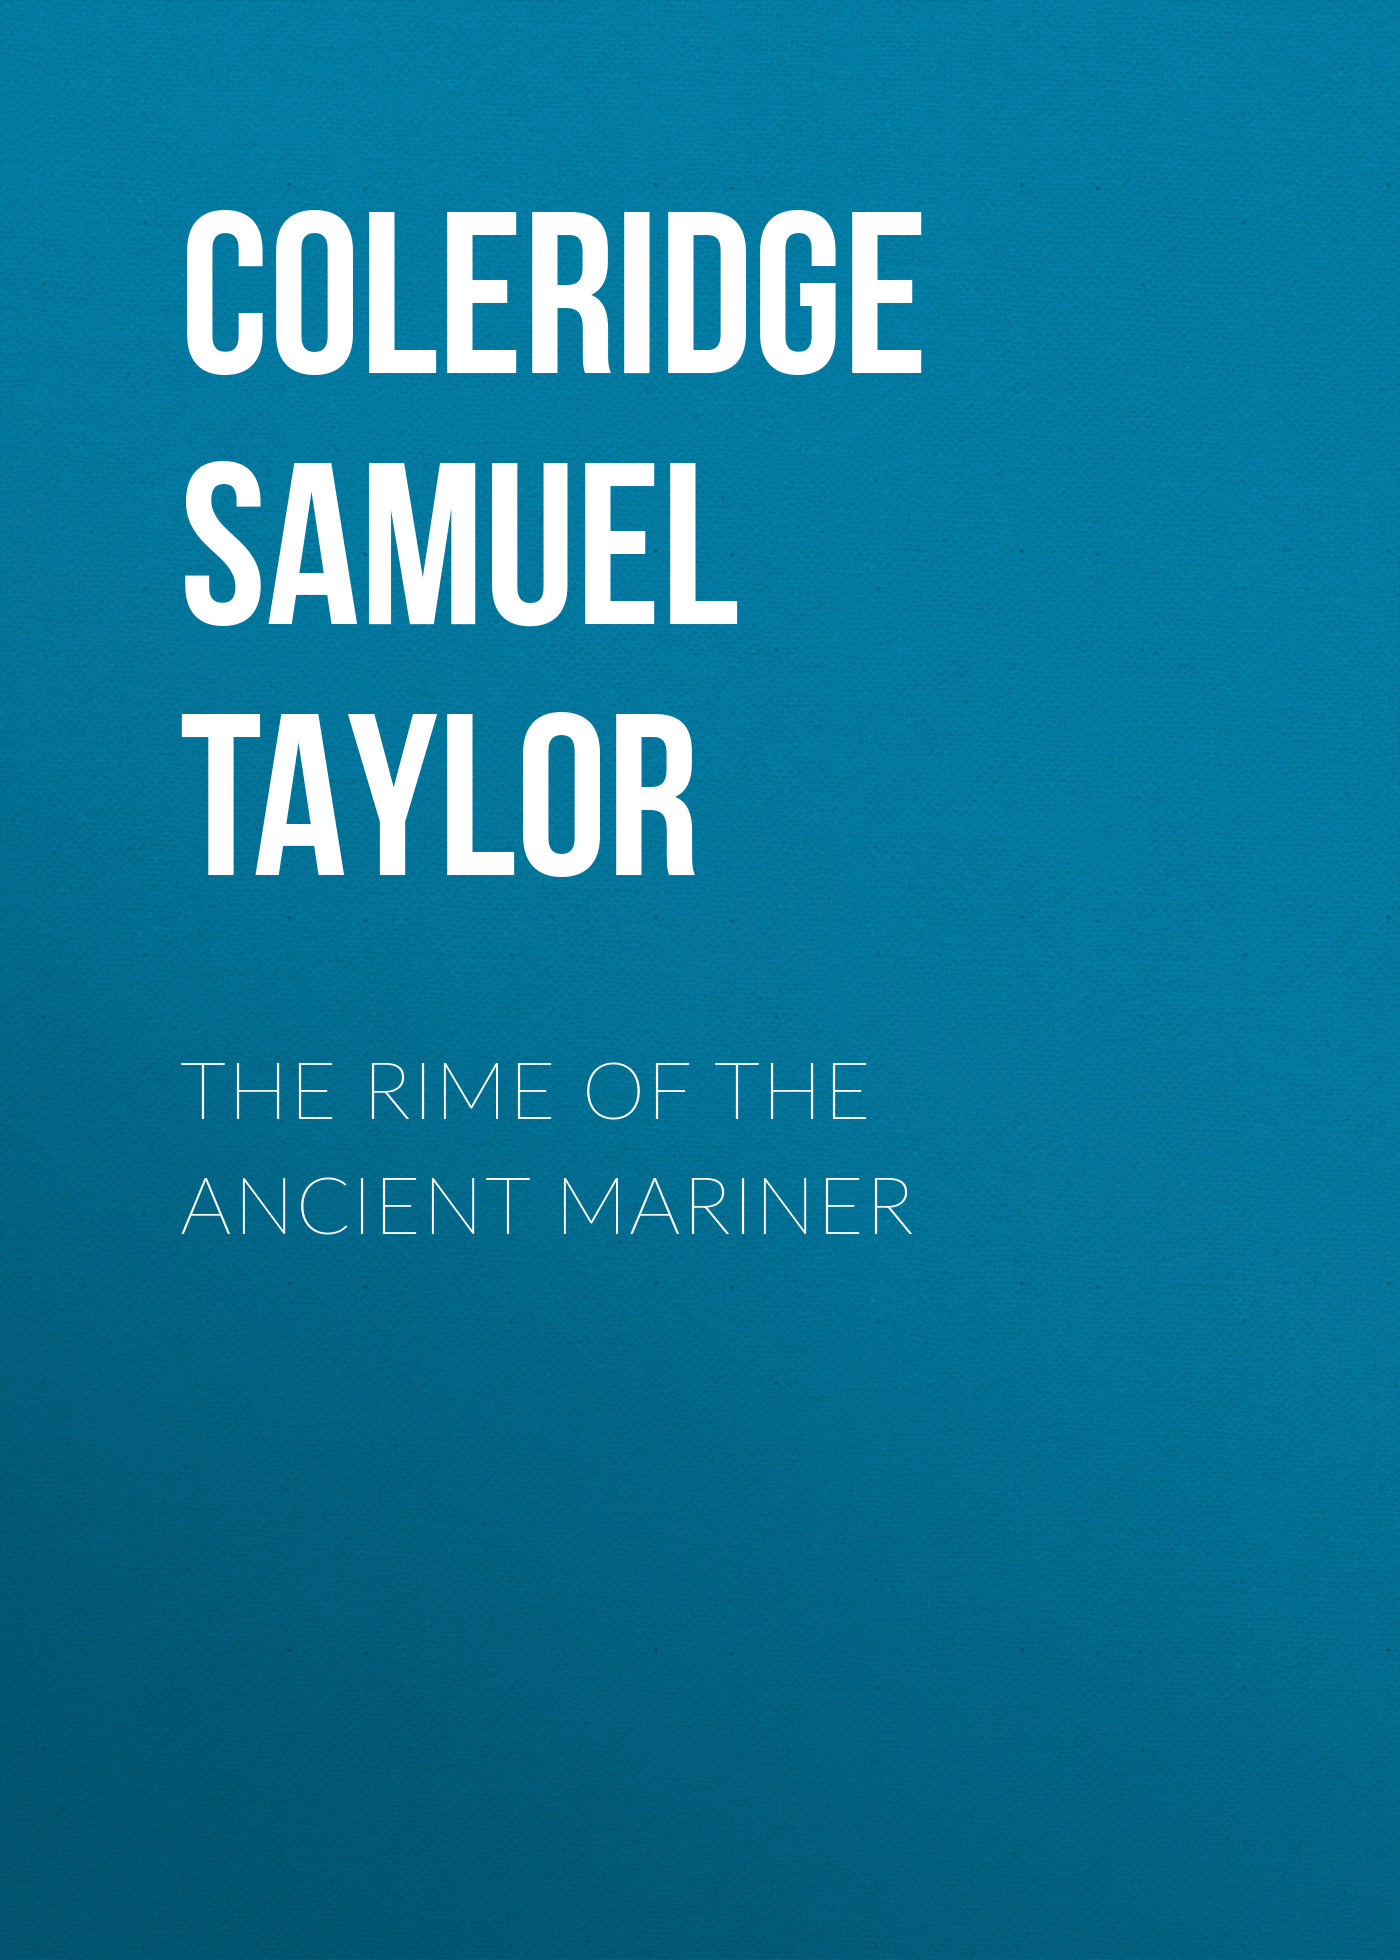 Coleridge Samuel Taylor The Rime of the Ancient Mariner